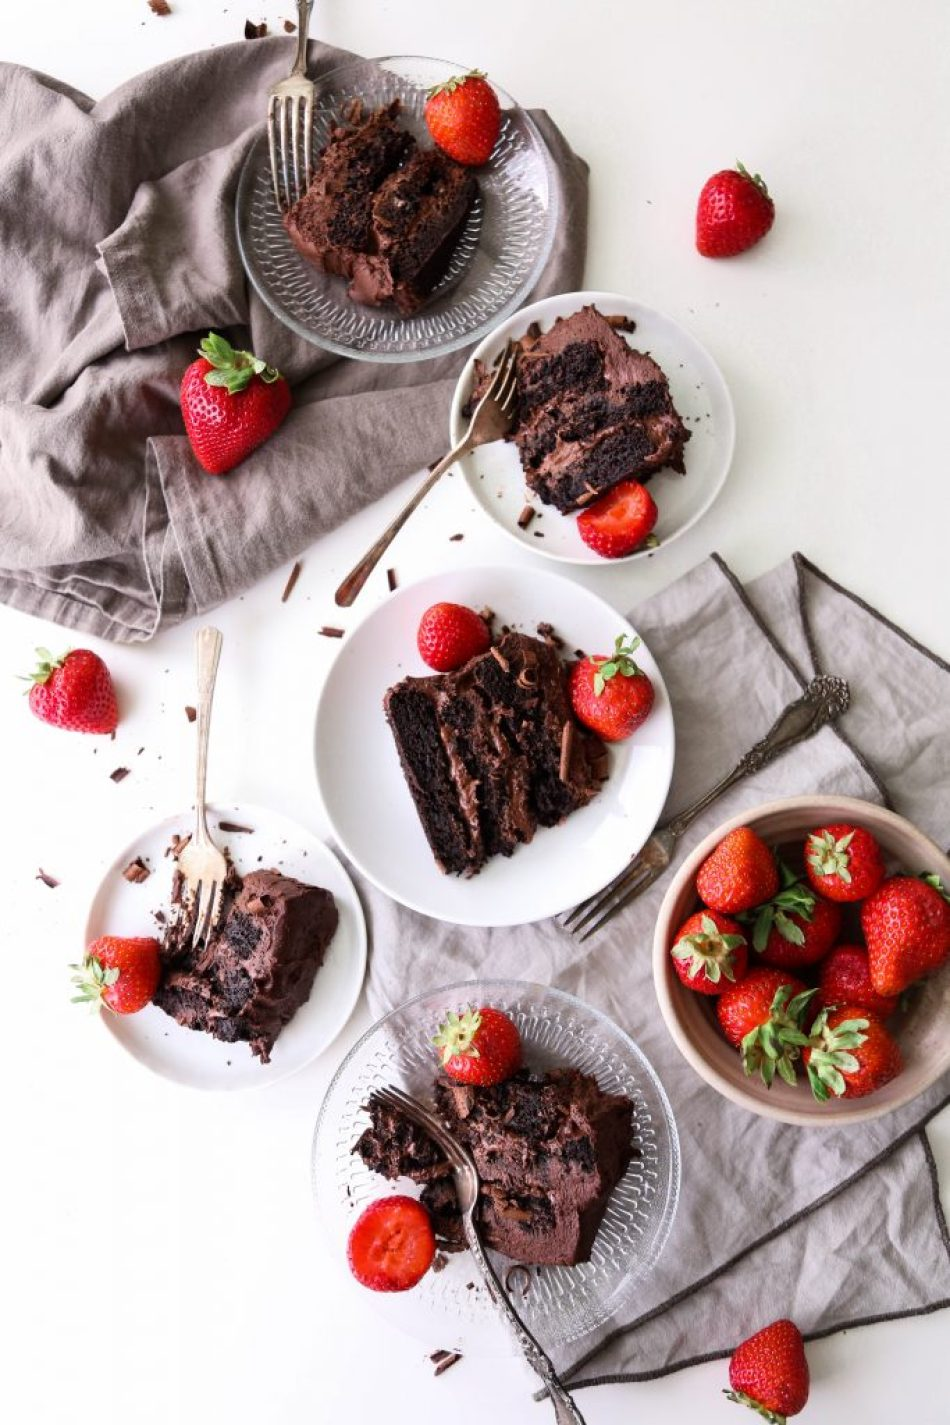 Vegan Chocolate Cake With Whipped Ganache   Gluten free and made with healthier ingredients!